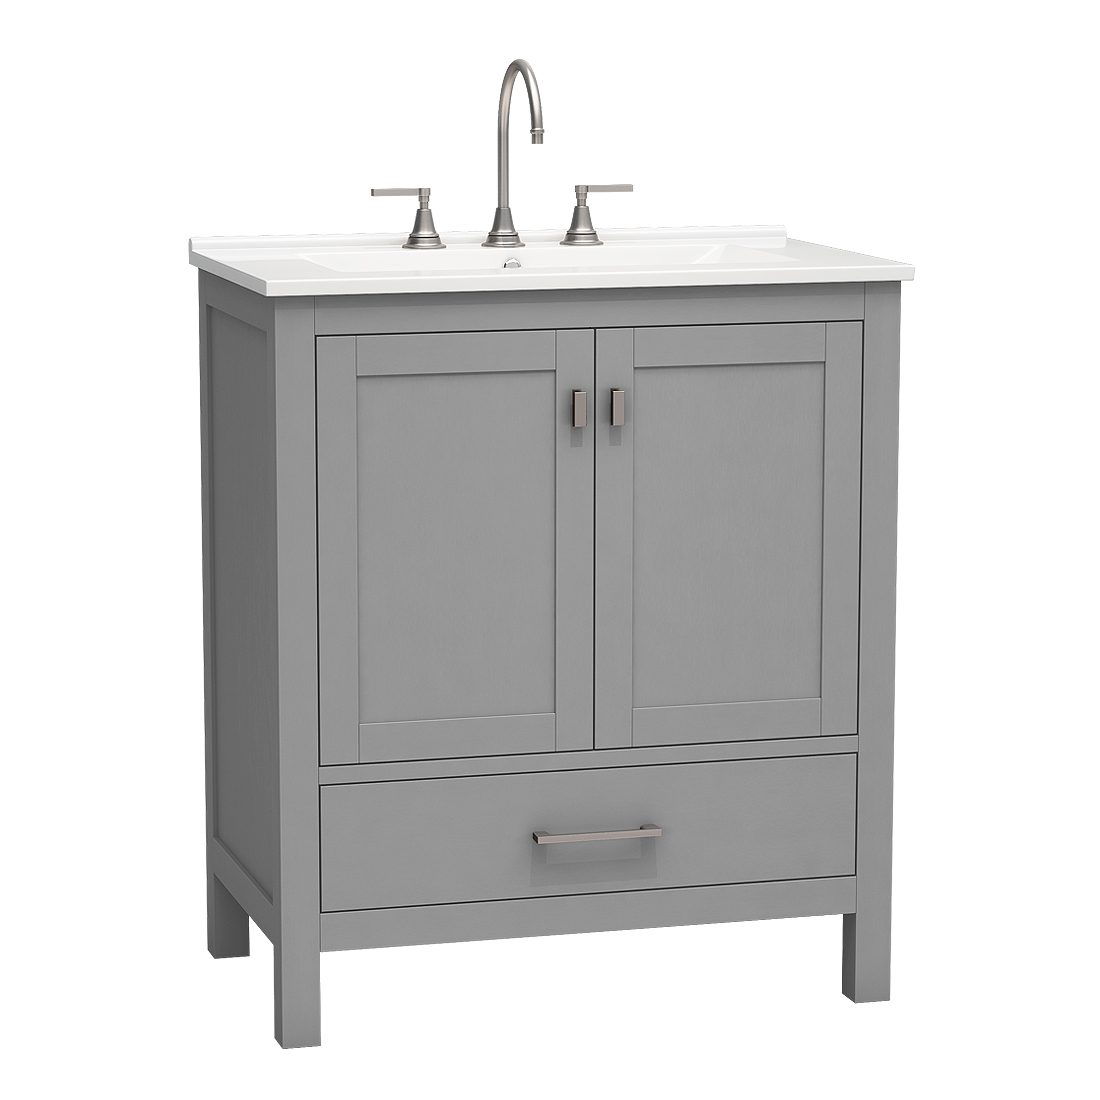 Torino 30inch Vanity Bottom Drawer Grey Front View